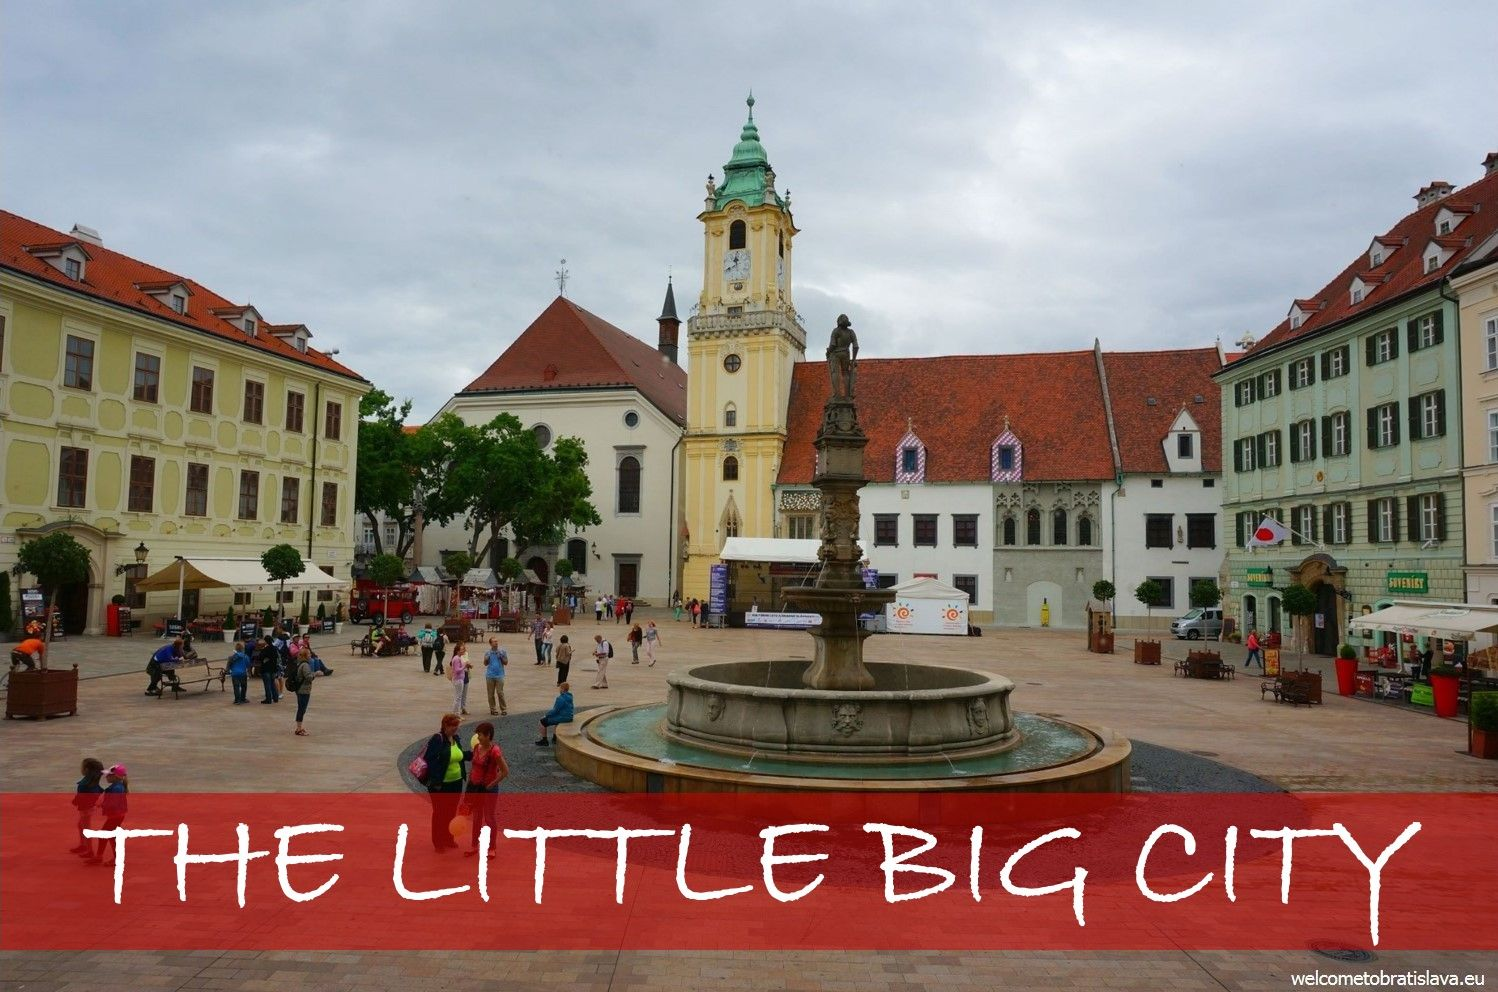 The little big city